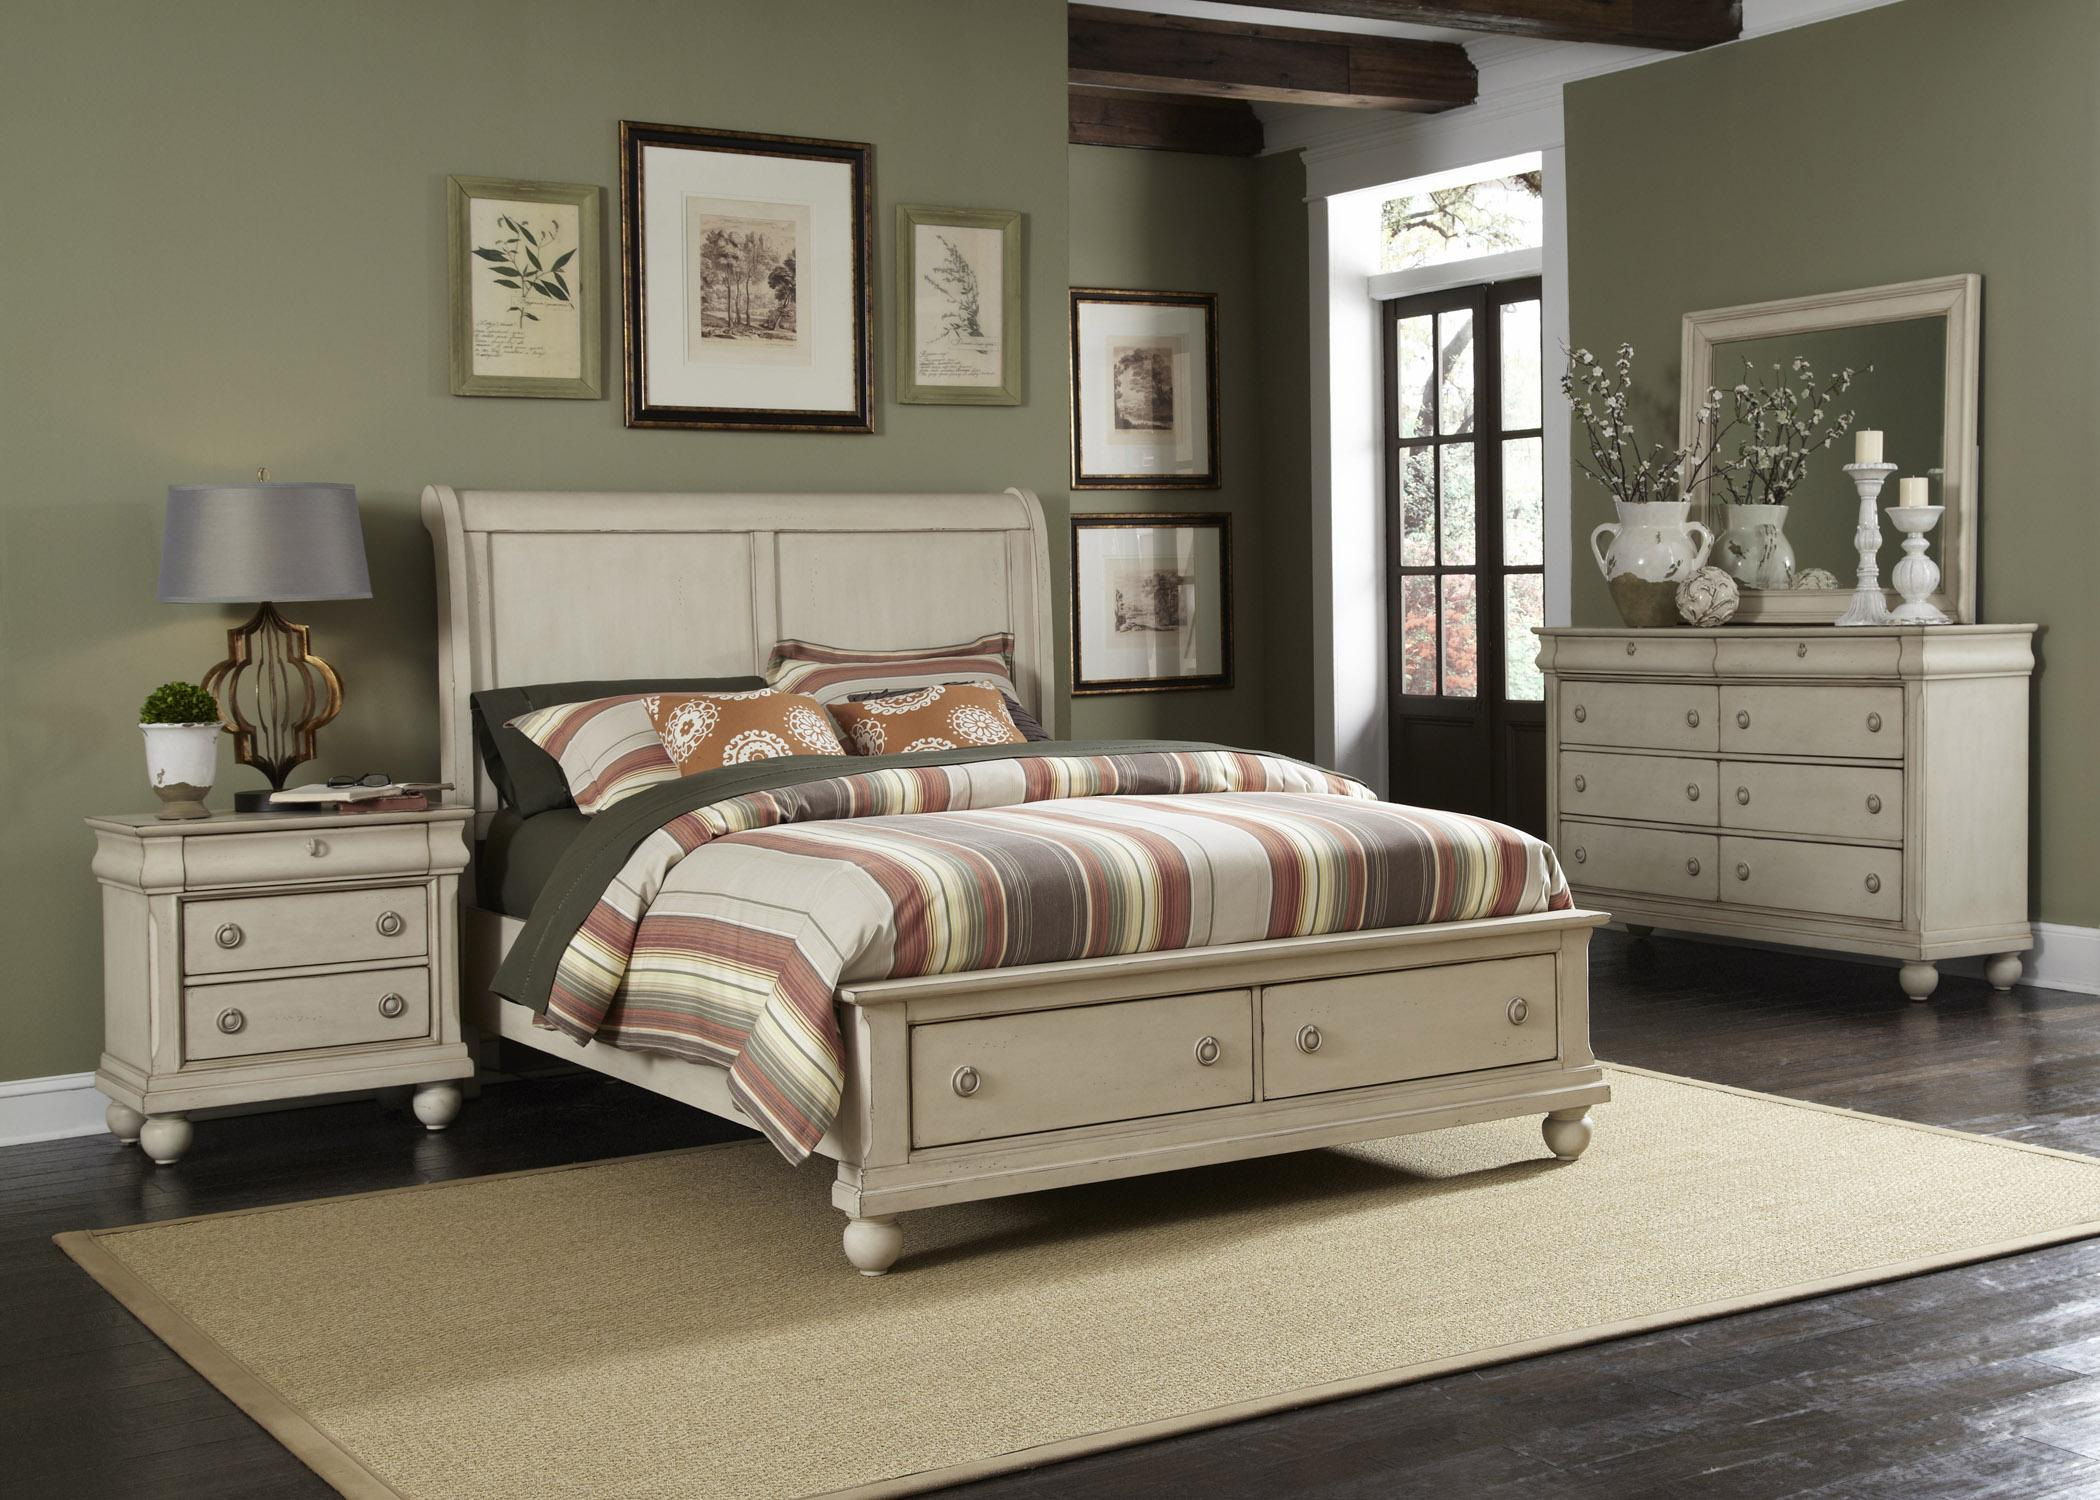 Liberty Furniture Bedroom Set Liberty Furniture Rustic Traditions Bed Bench With Upholstered